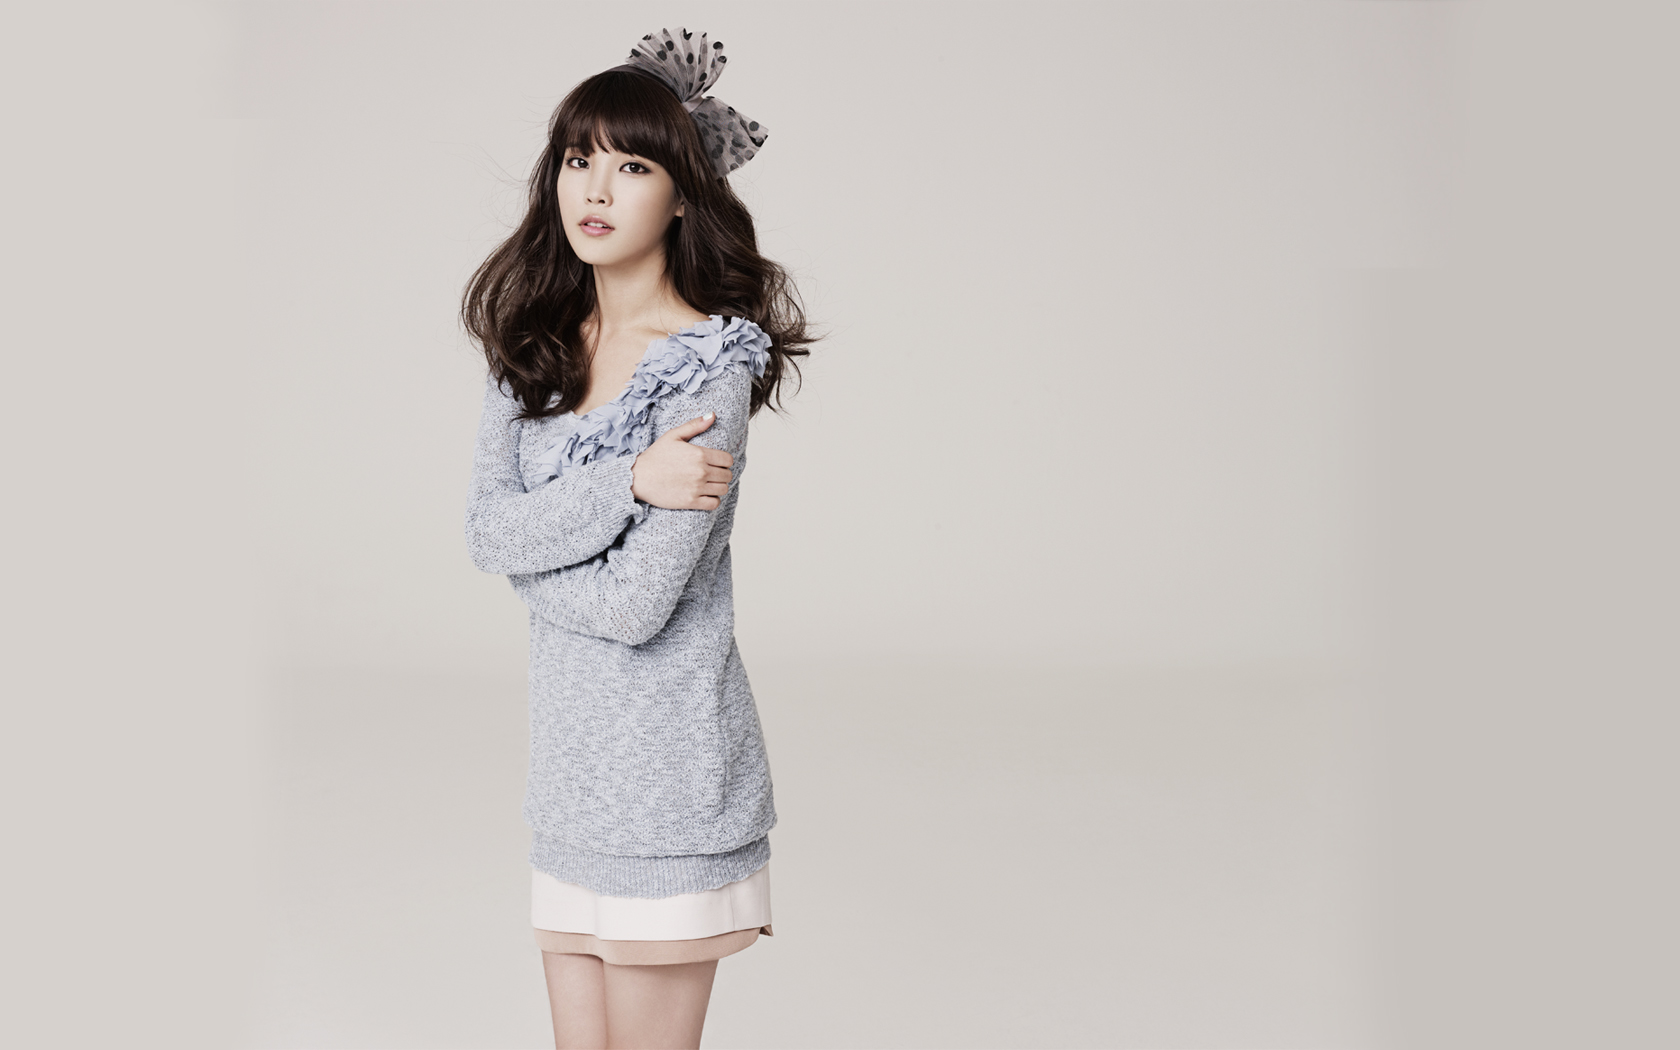 iu images iu y 39 sb hd wallpaper and background photos